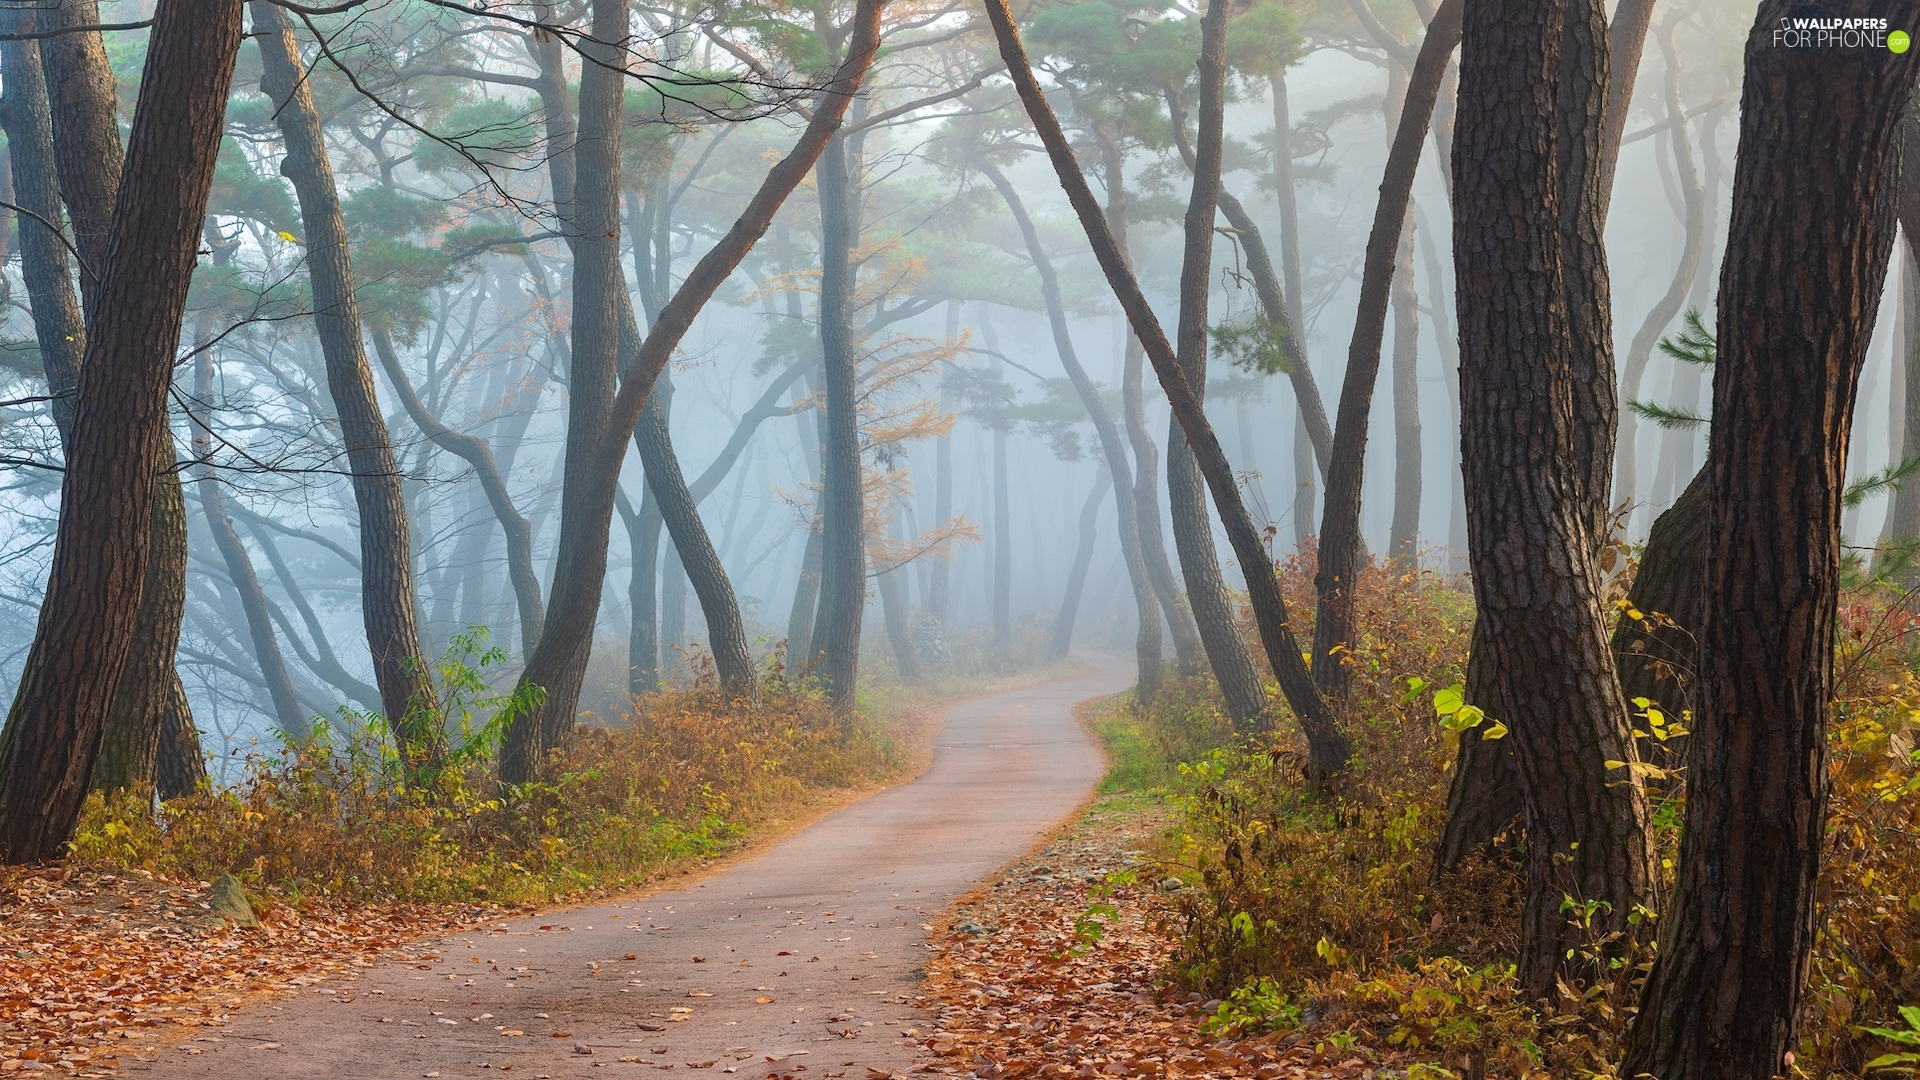 Fog, Way, viewes, forest, trees